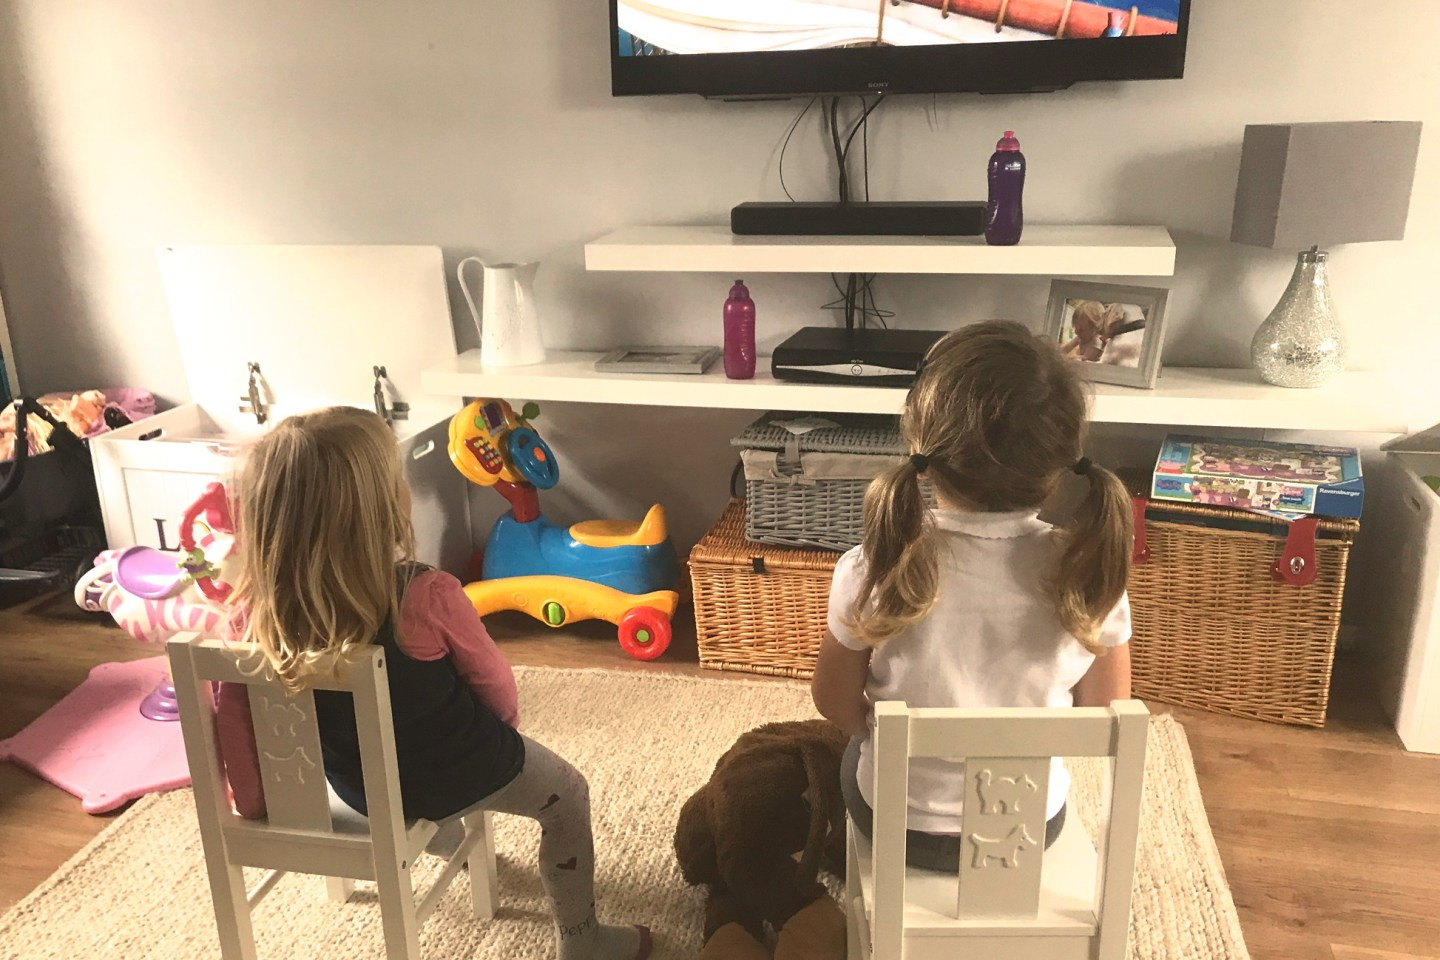 Two sisters, sitting side by side on chairs, watching TV